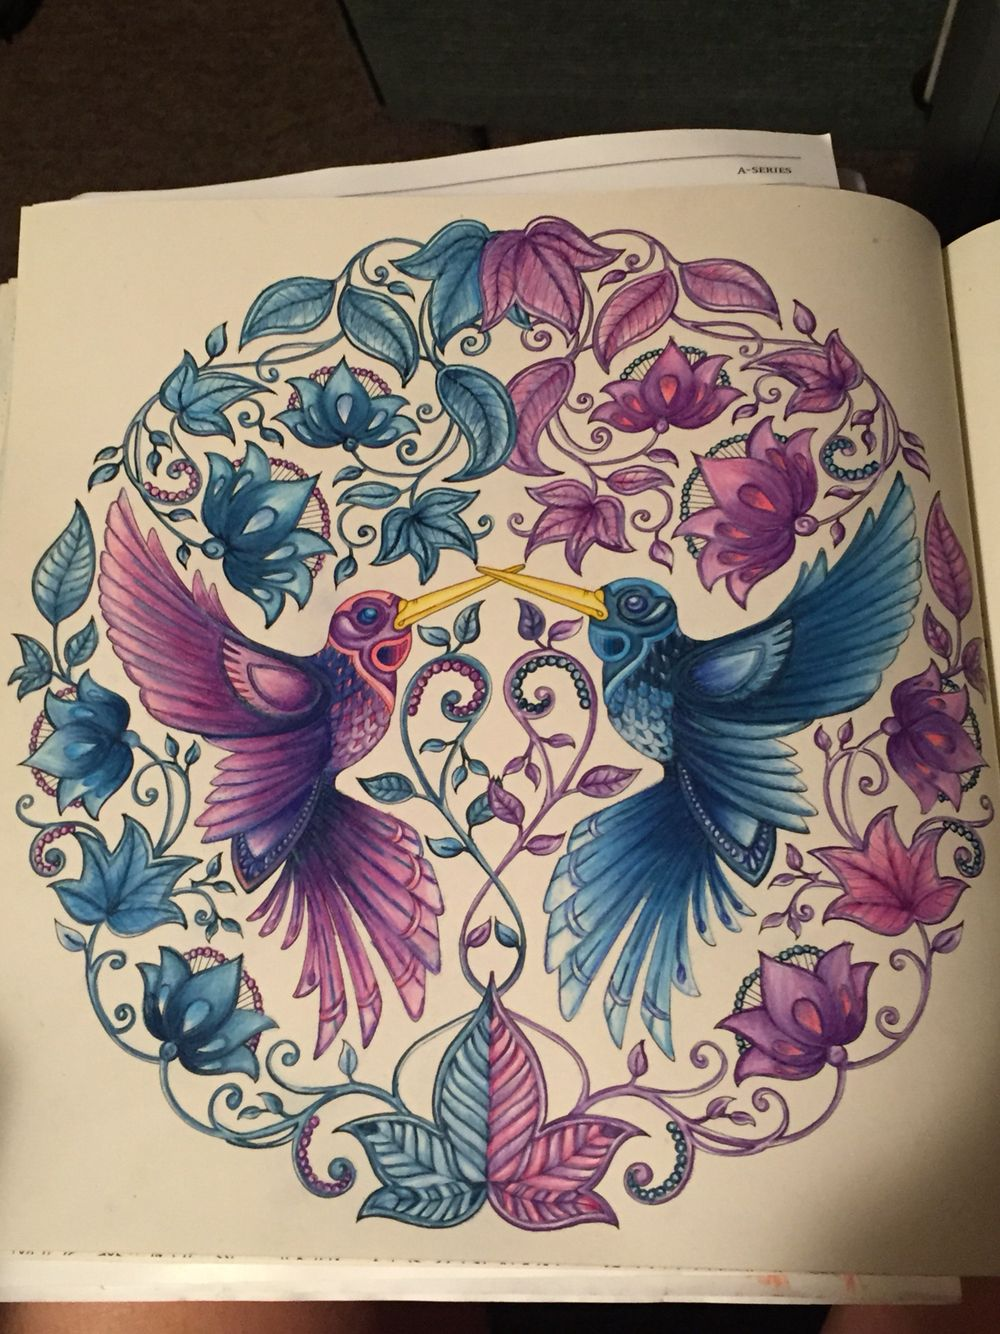 Just Finished The Two Love Birds Secret Garden Coloring Book Secret Garden Coloring Book Coloring Books Secret Garden Colouring